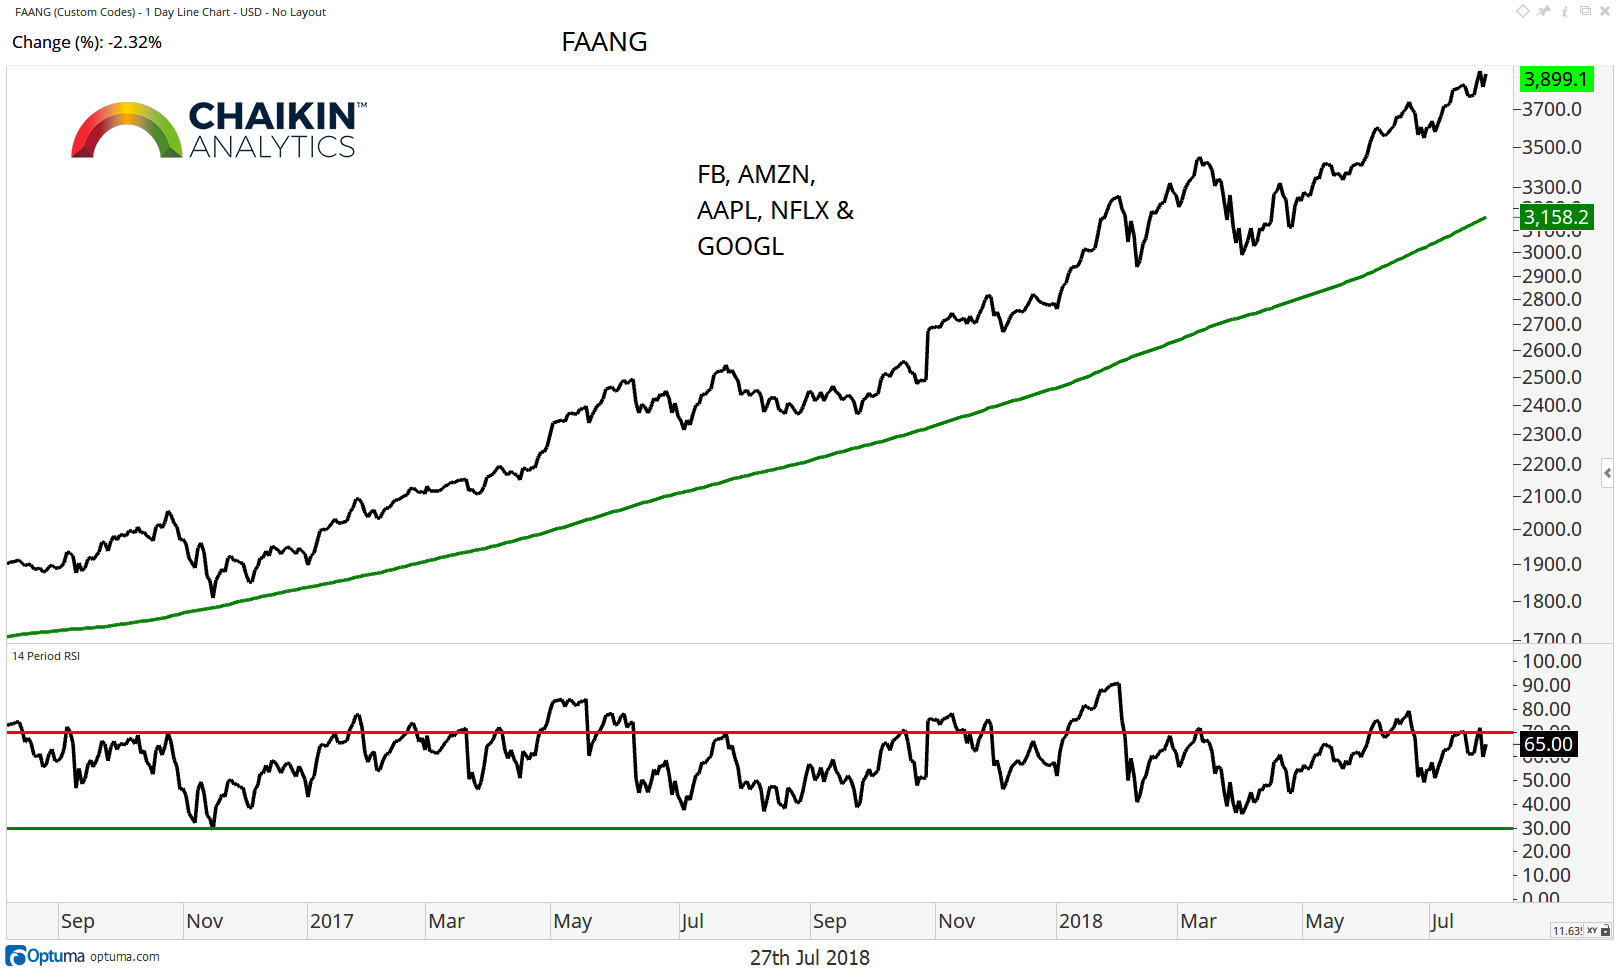 fang stocks performance analysis 2 year chart through 27 july 2018